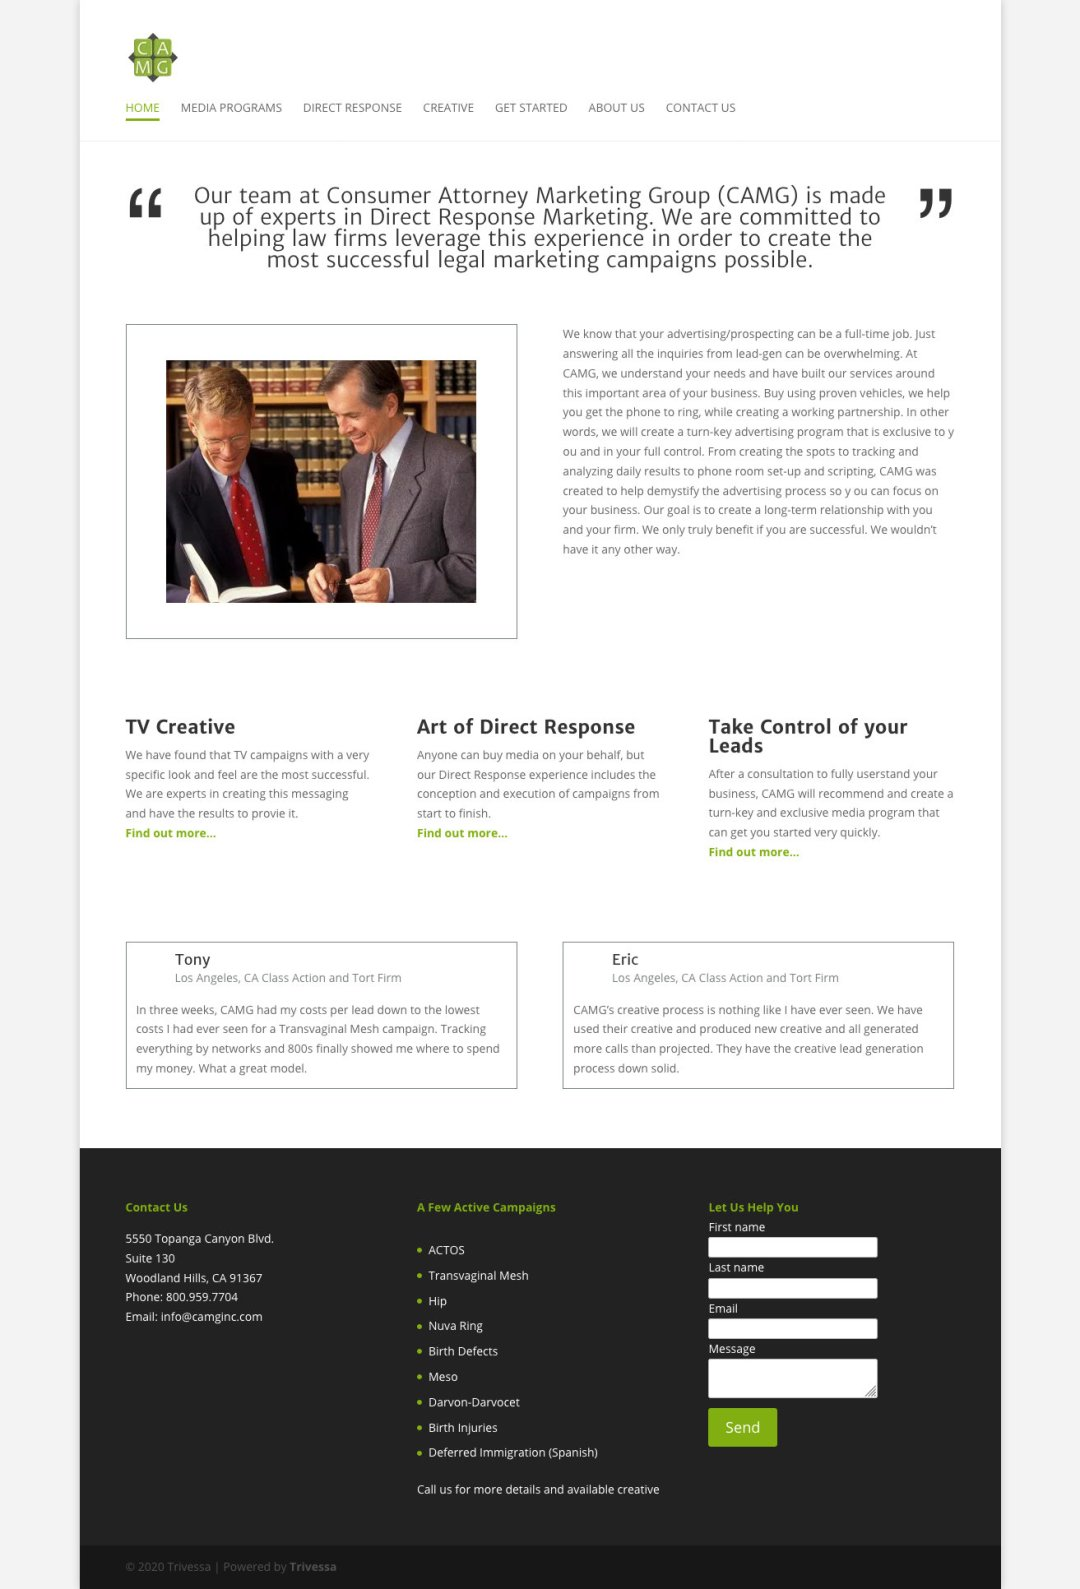 CAMG website as redesigned by Trivessa